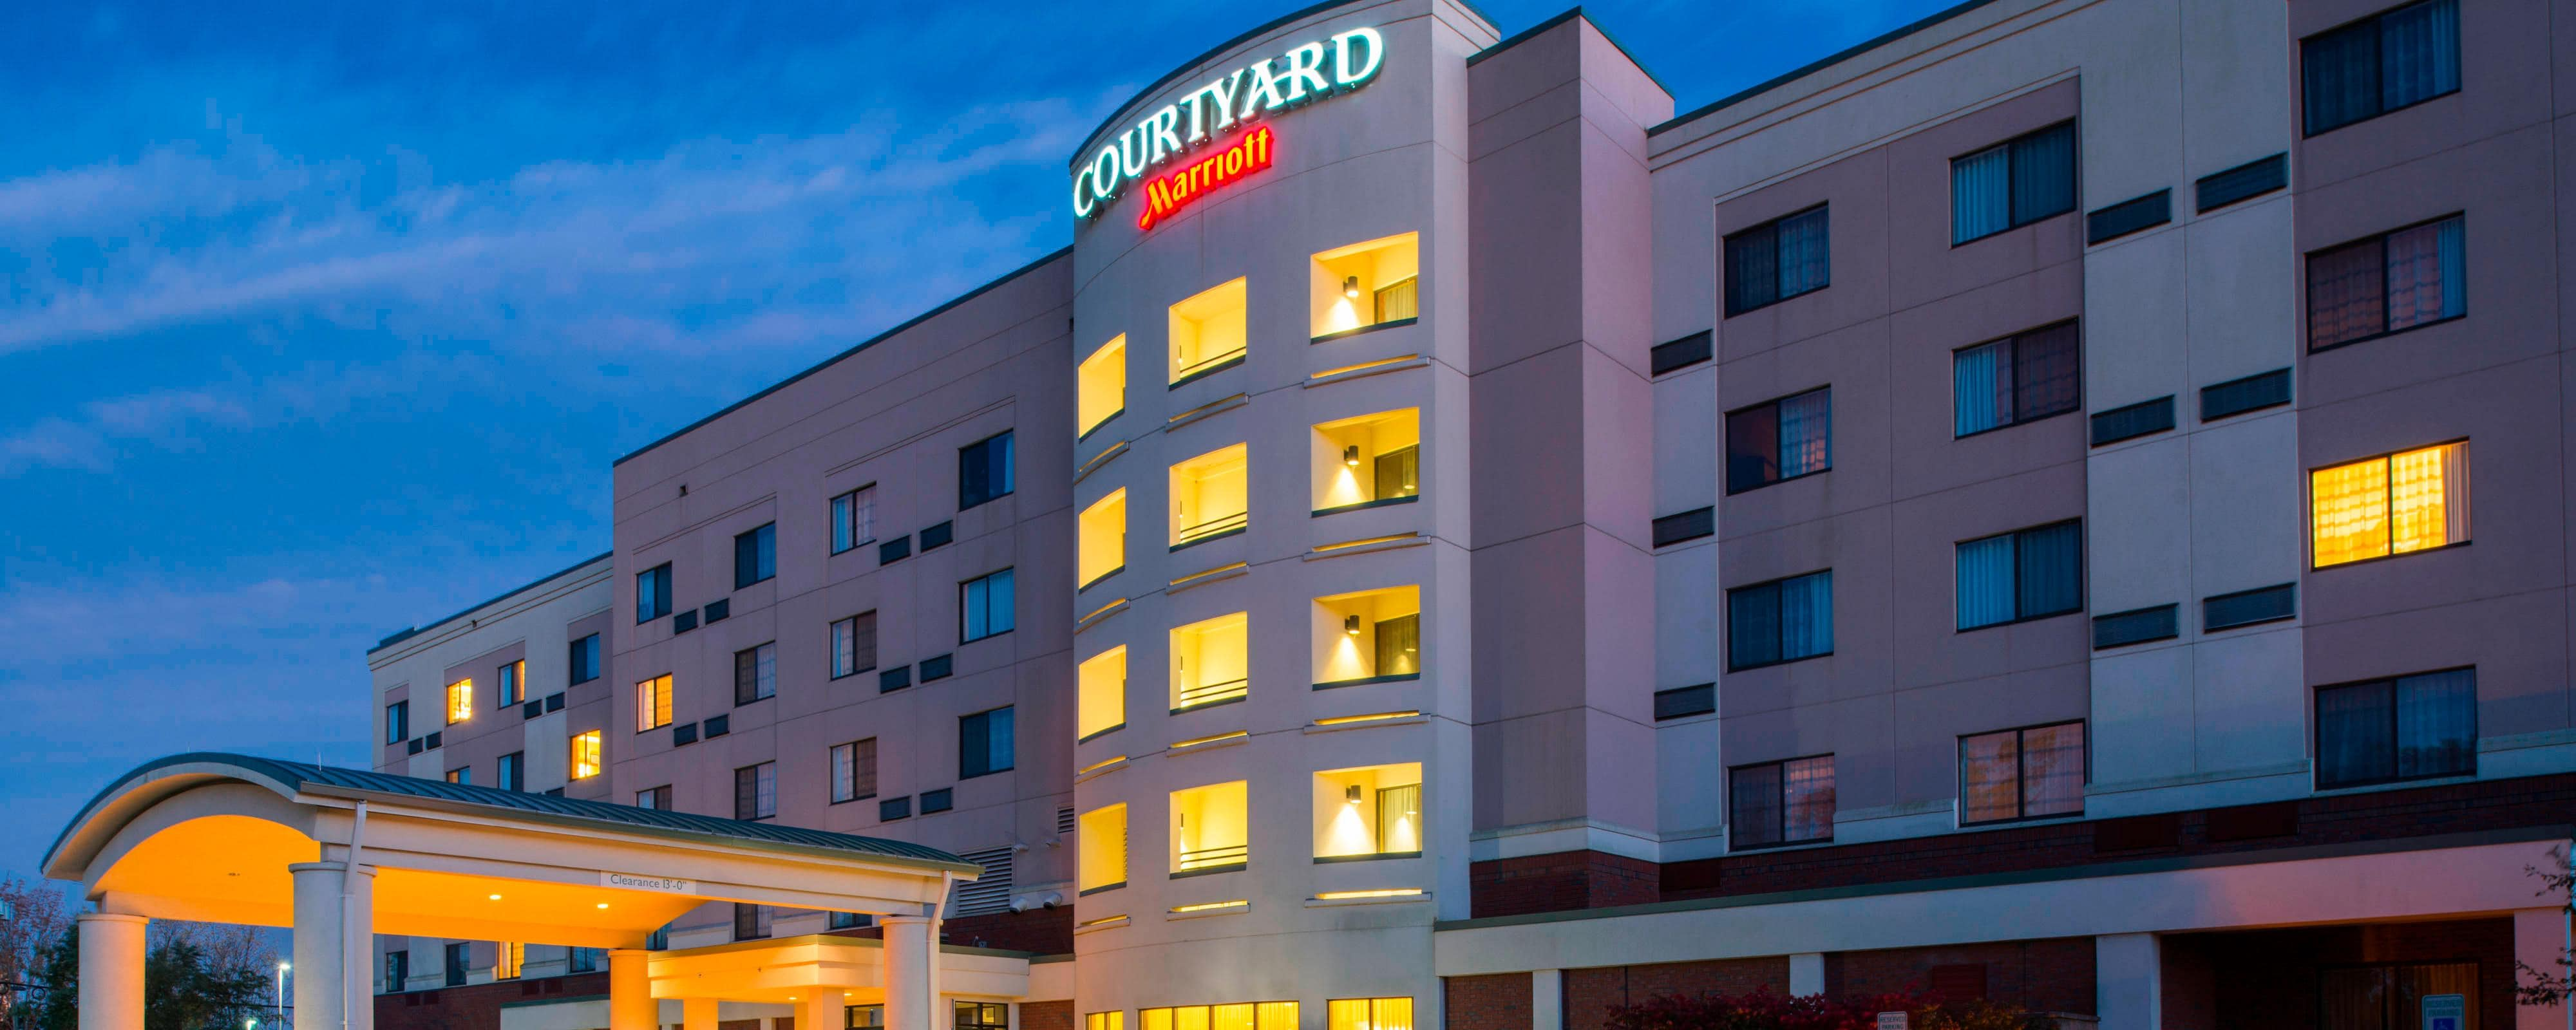 Hotels Near The College of New Jersey